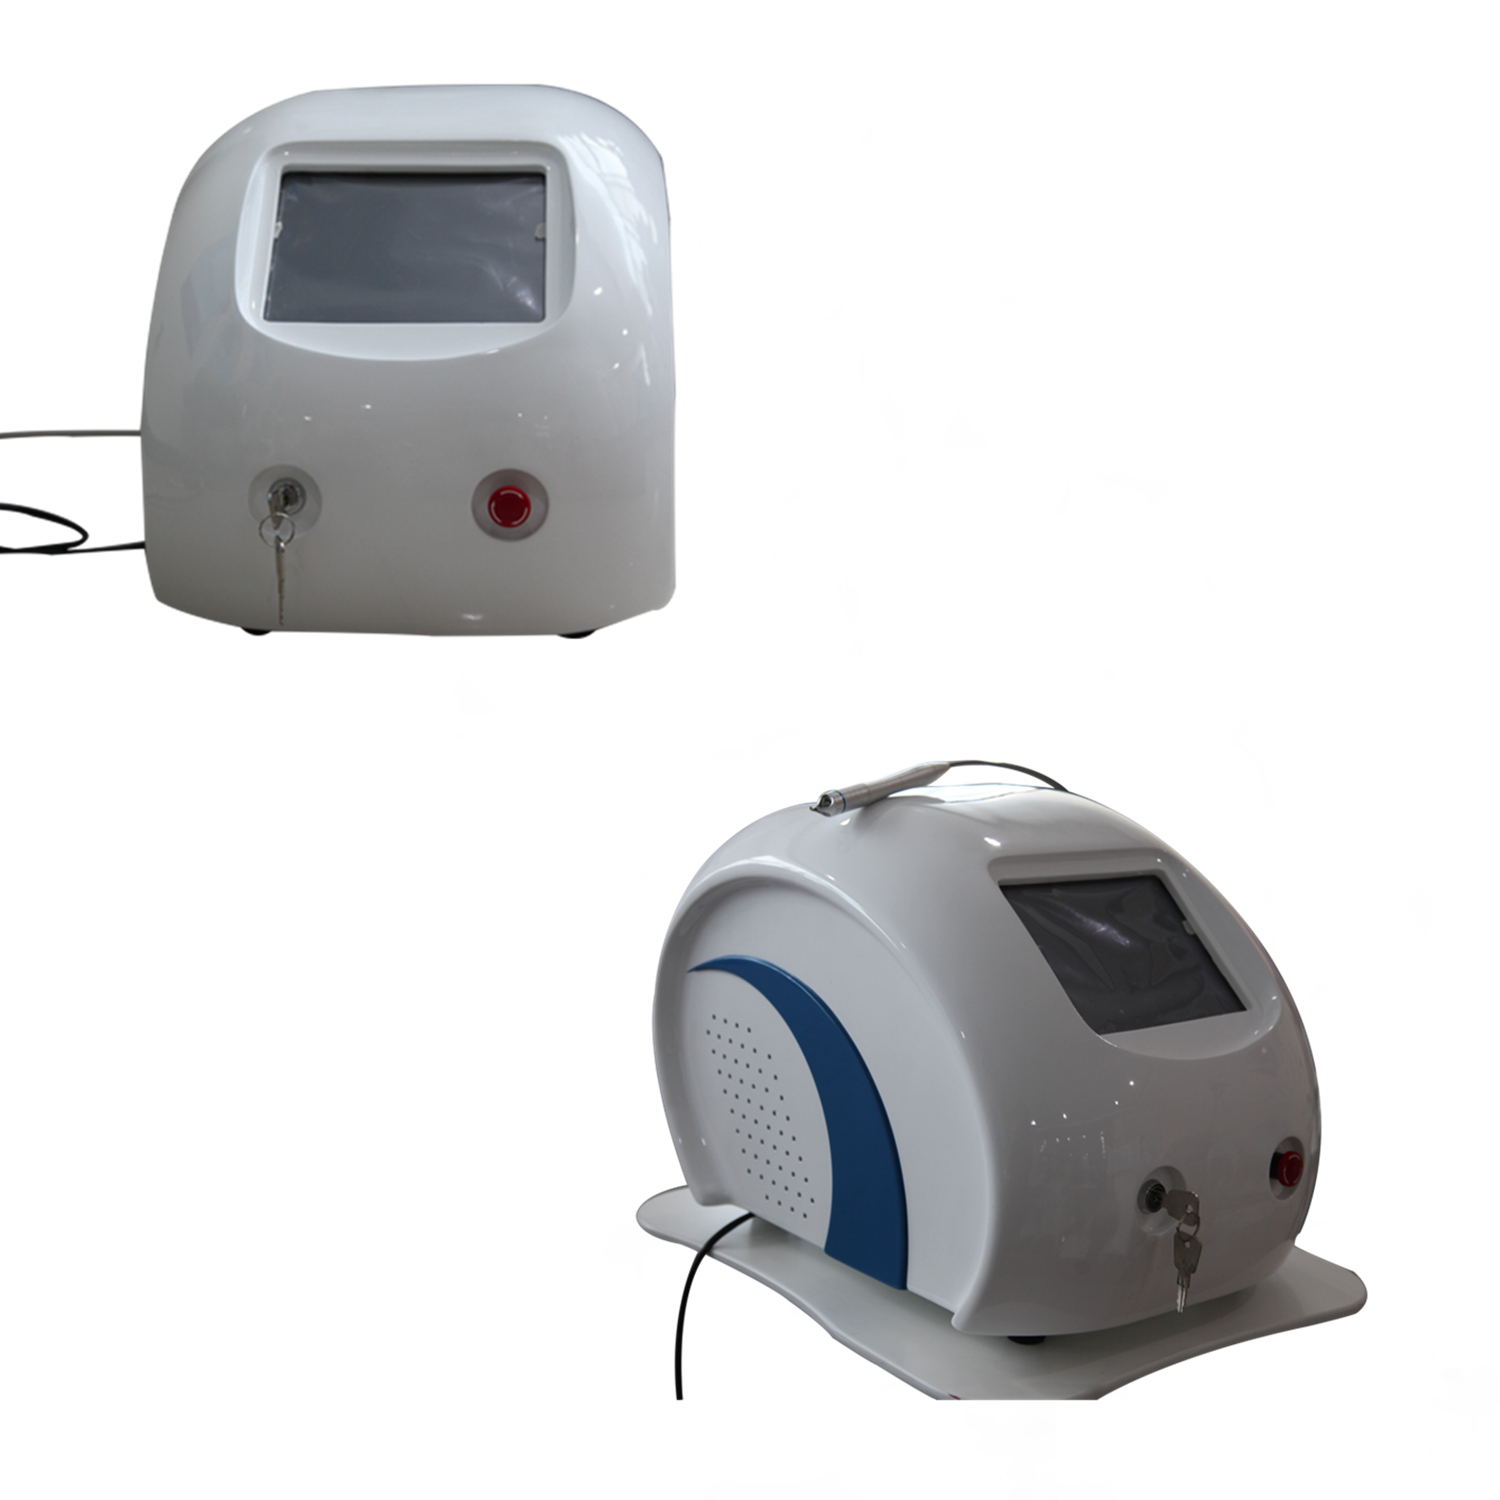 980nm Laser Blood Vessel/Spider Veins Removal Medical Beauty Equipment